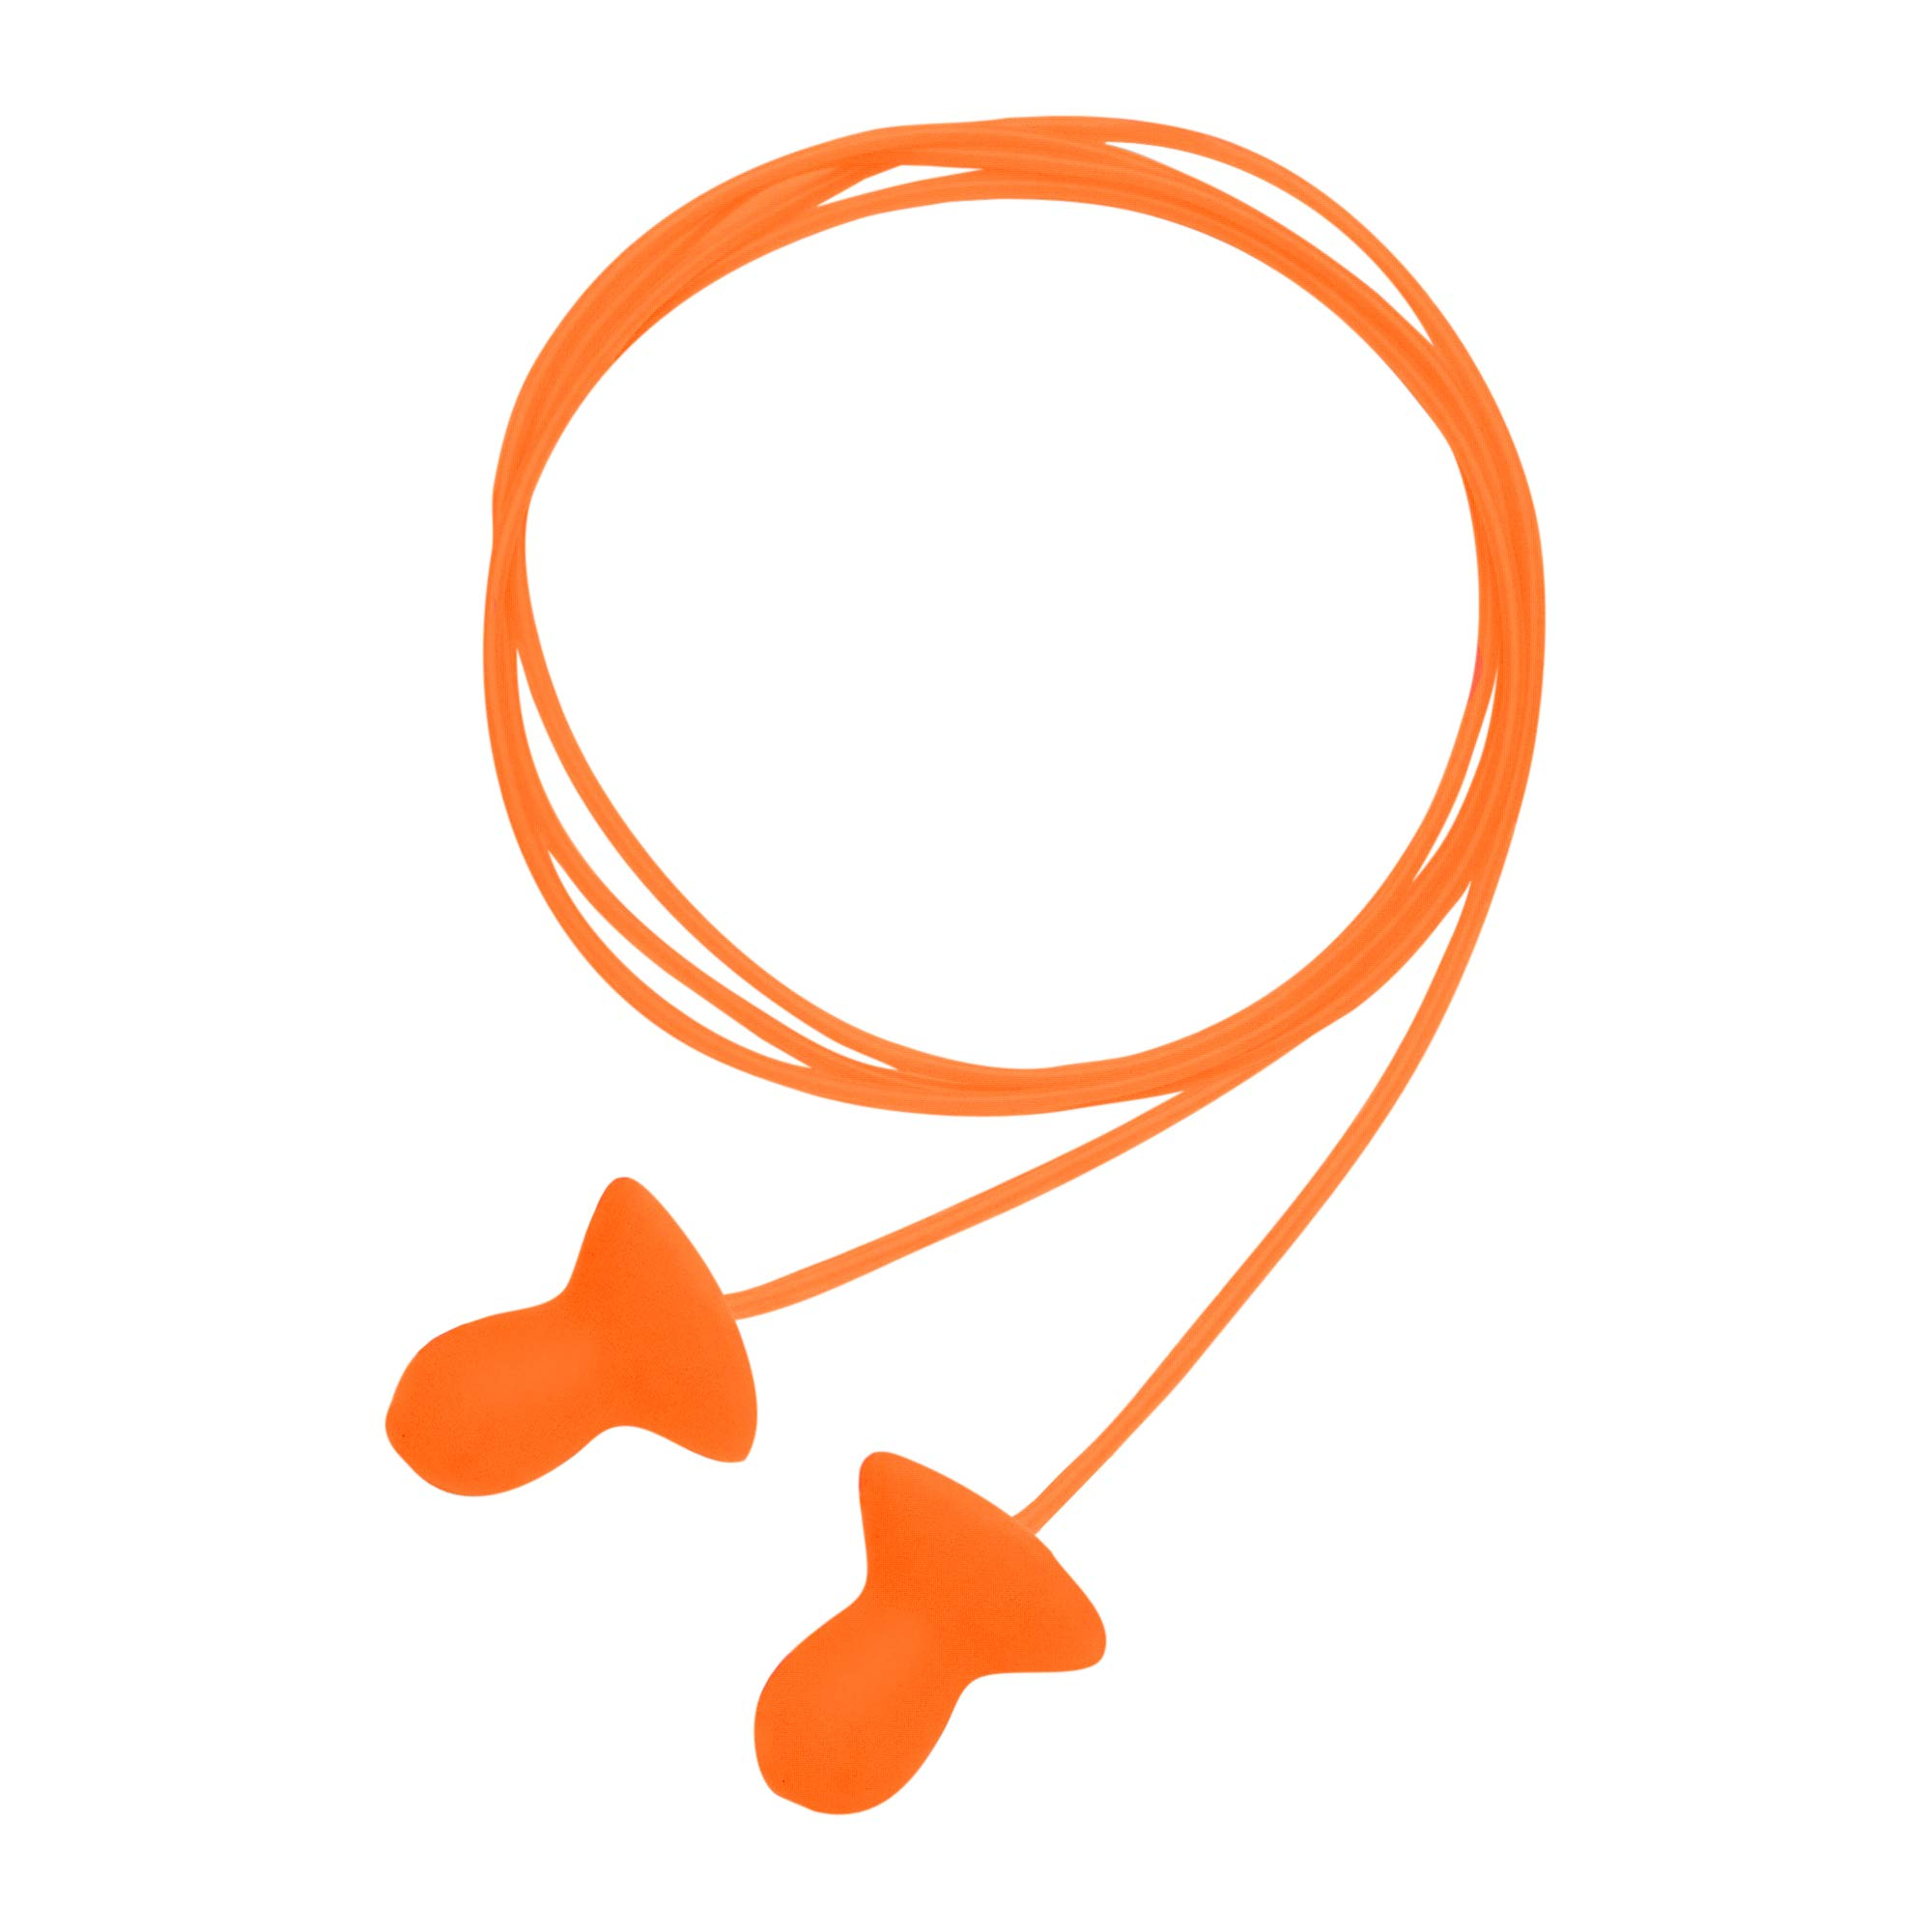 Howard Leight by Honeywell Quiet Corded Reusable Earplugs, 100 Pairs (QD30) by Honeywell (Image #1)